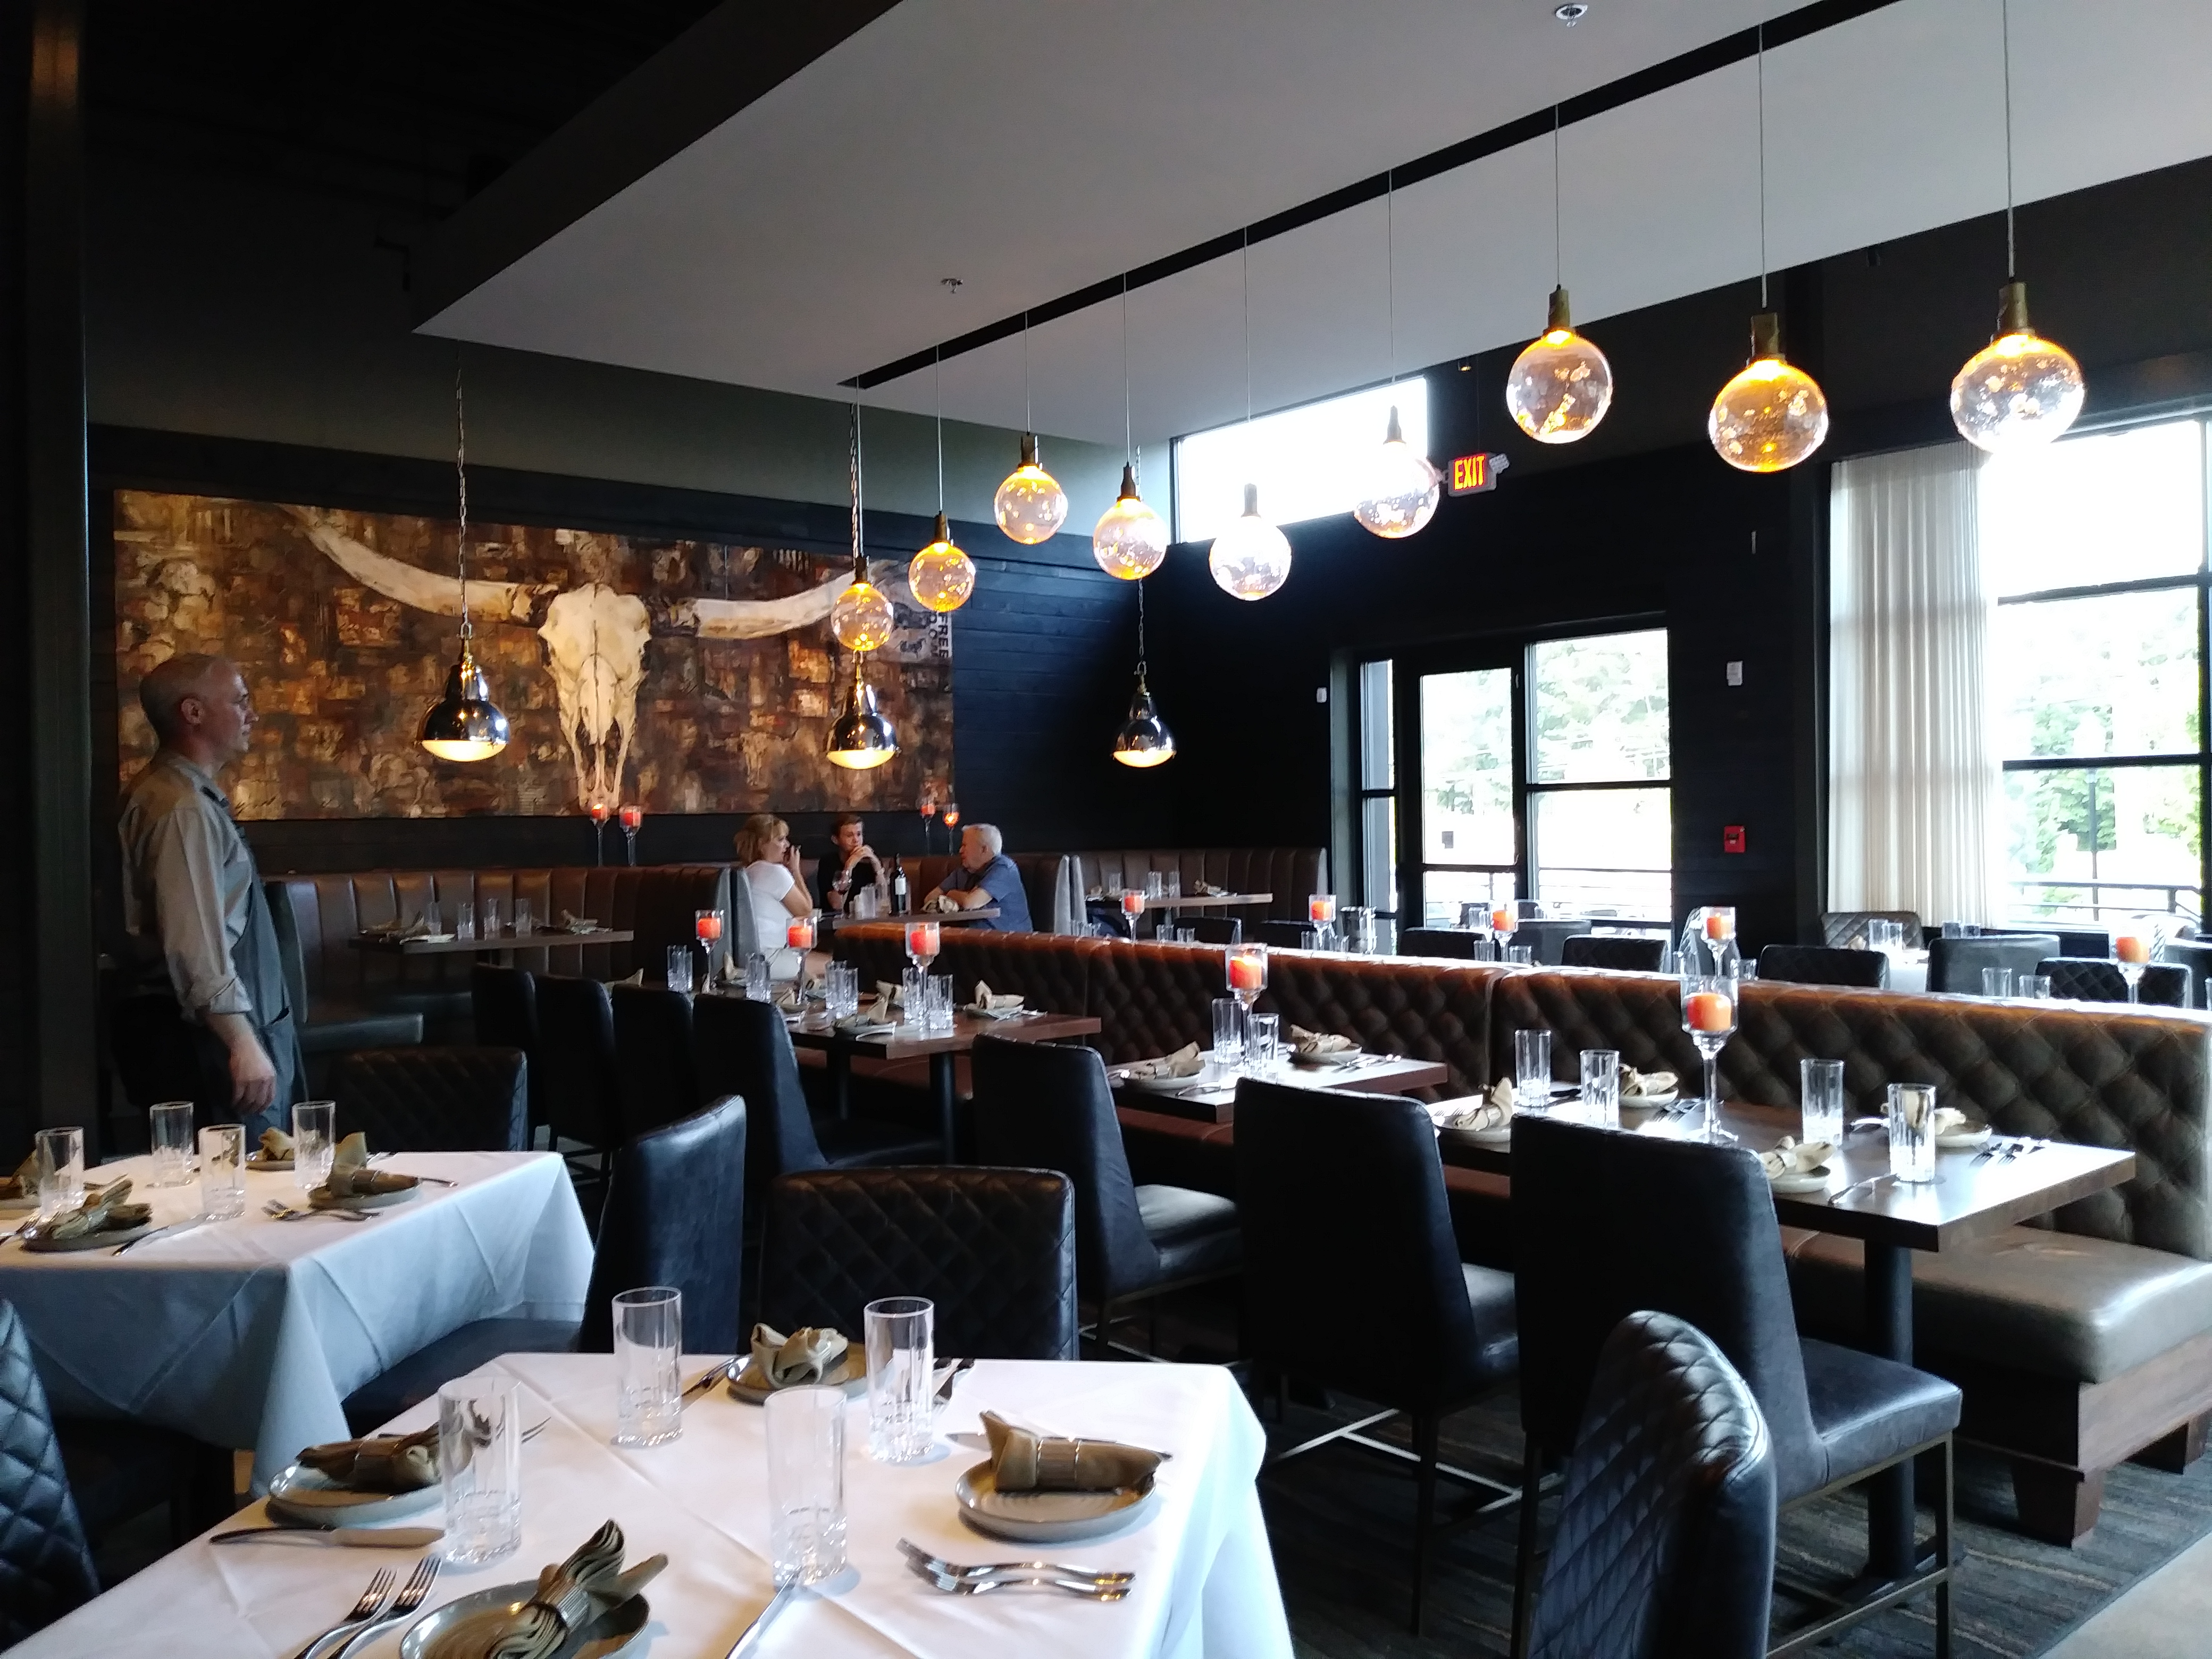 Arnette S Chop An Upscale Steakhouse With A Casual Vibe Is One Of The Newest Restaurants To Move Into Brookhaven Owned By Restaurateur Michel